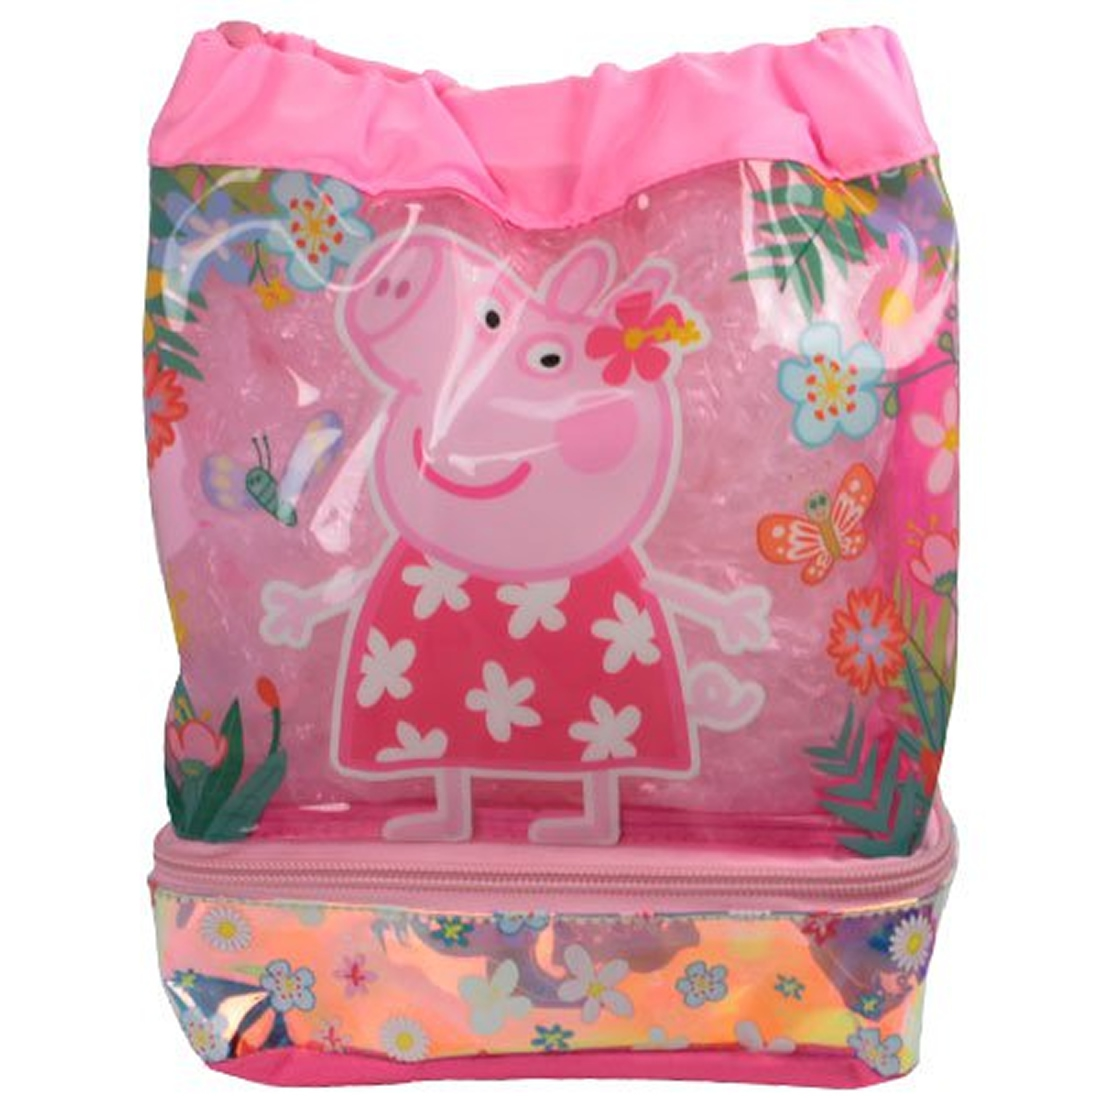 Peppa Pig Beautiful School Swim Bag